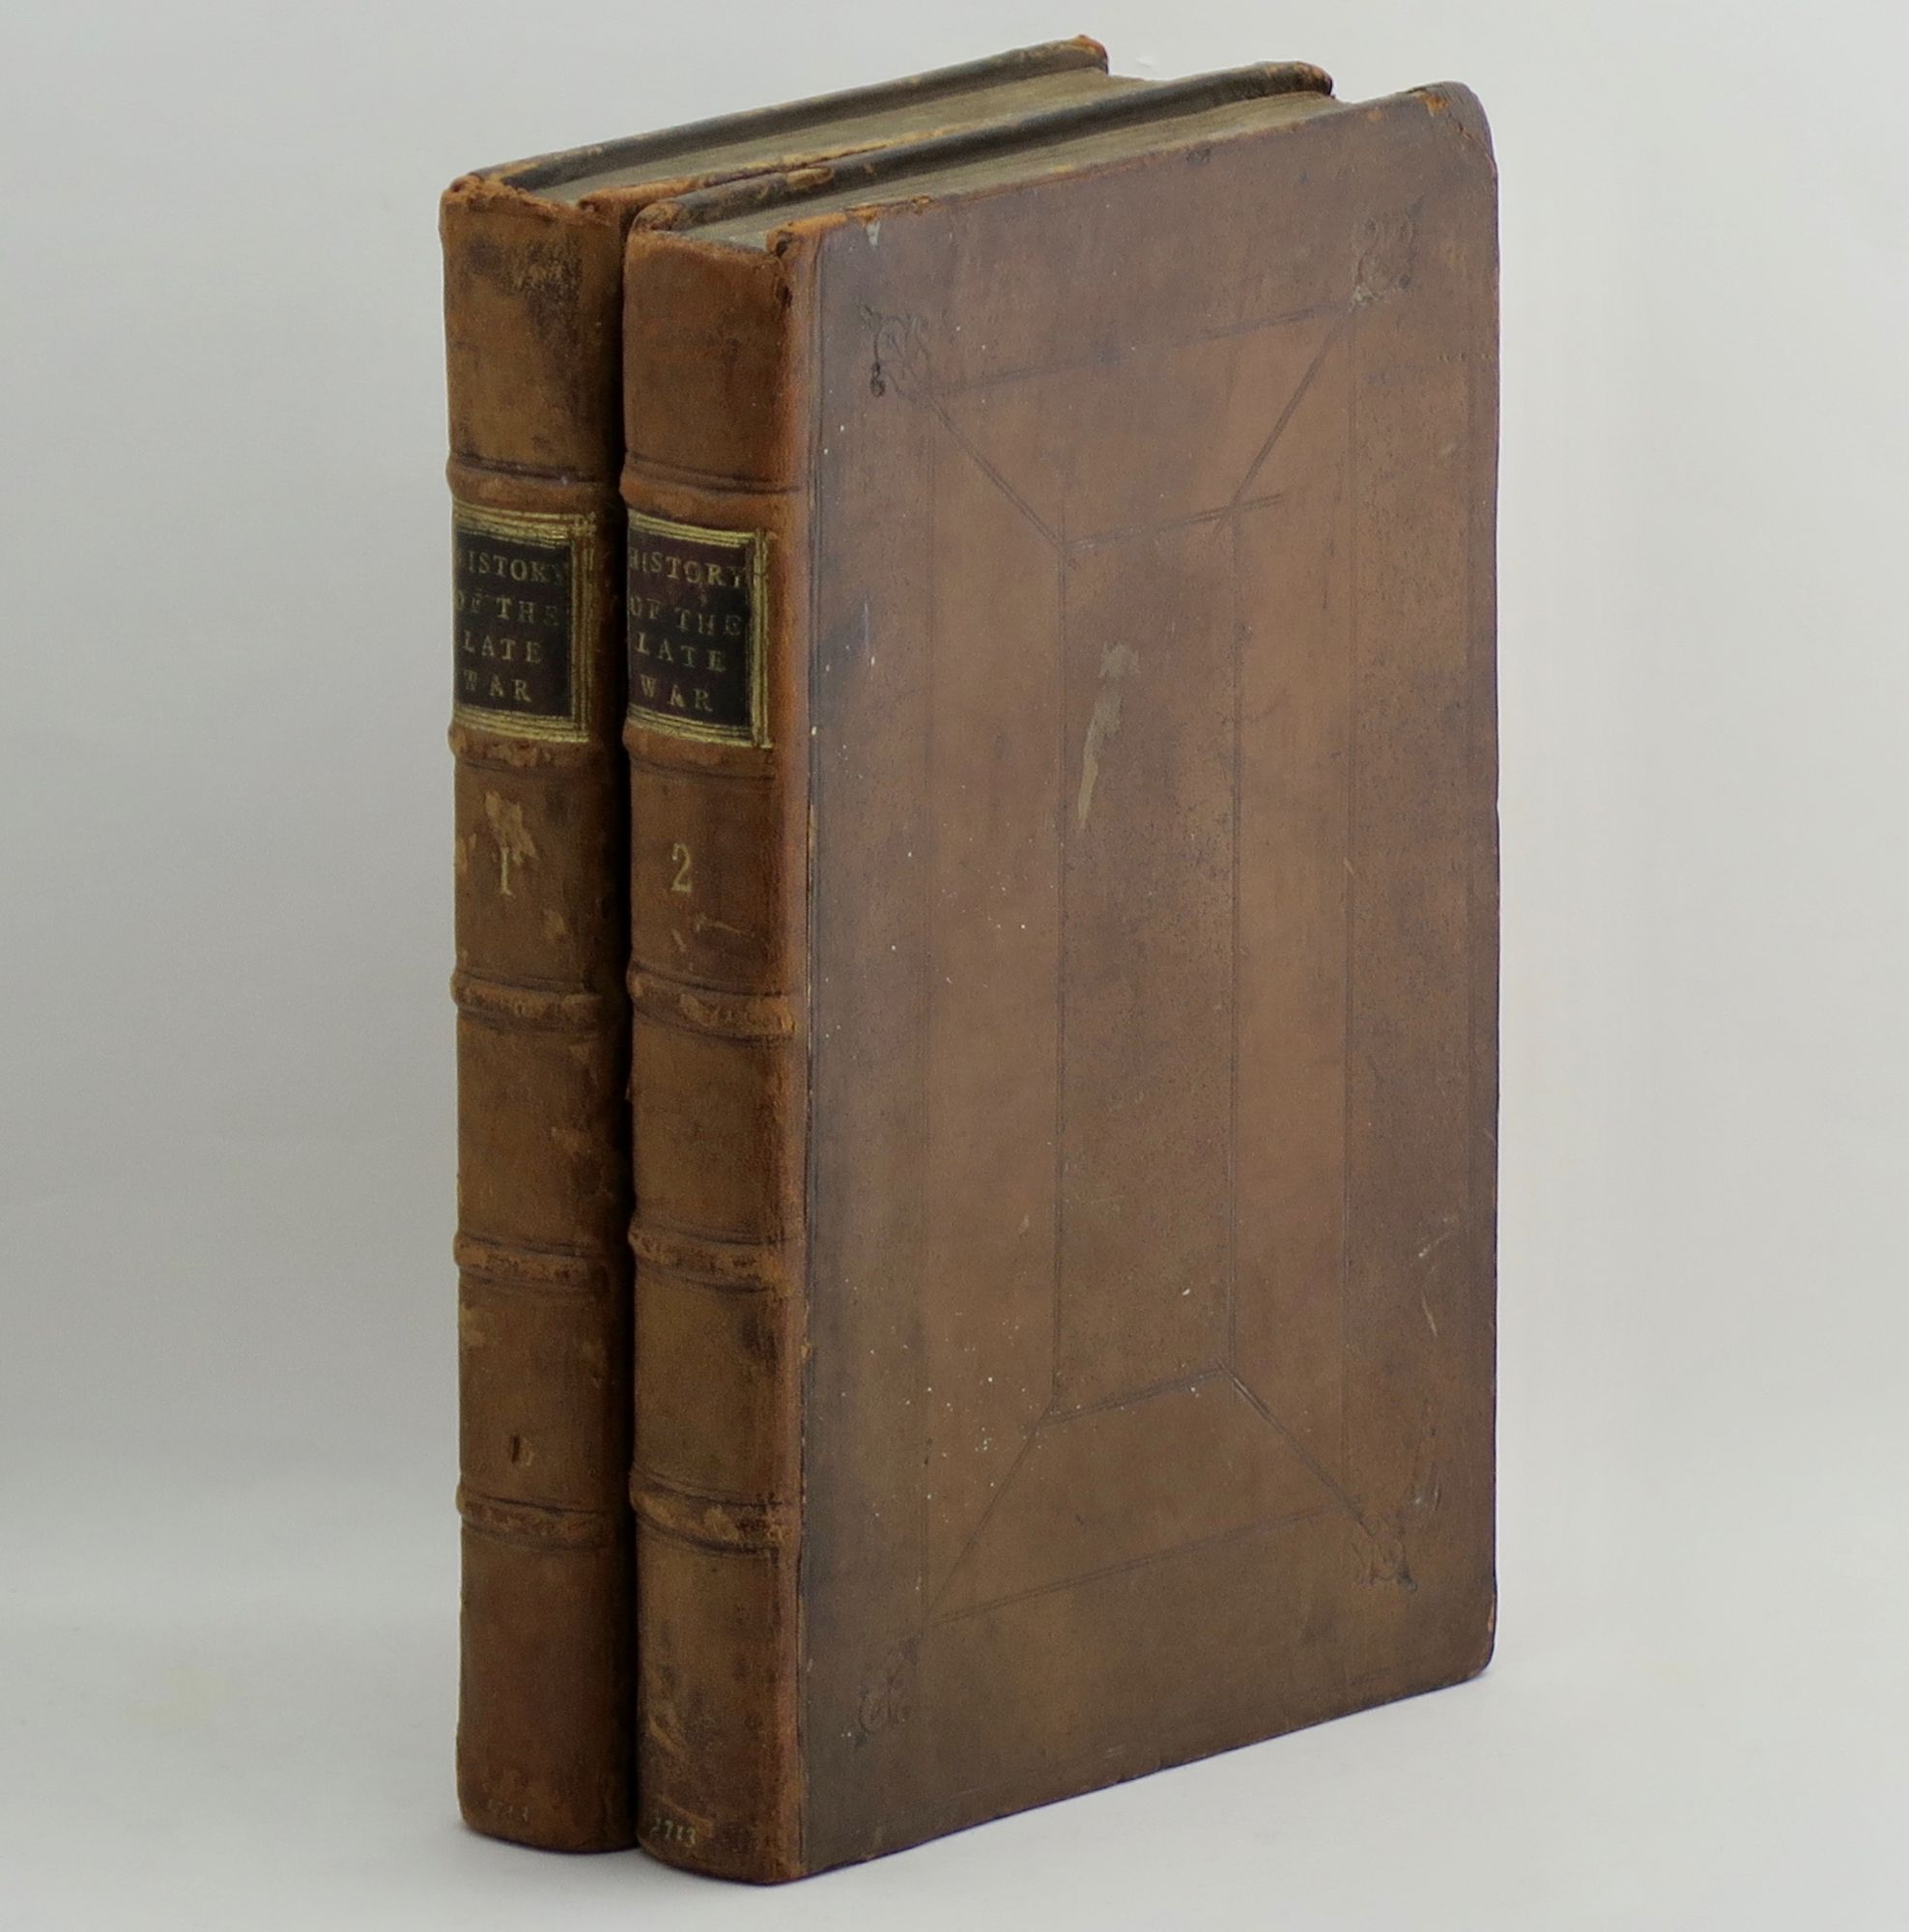 BRODRICK, THOMAS - A Compleat History of the Late War. In the Netherlands. Together with an Abstract of the Treaty of Utrecht. The Whole Illustrated with 15 Curious Copper Plates; and the Coat of Arms of Most of the Nobility, and Several Other Eminent Persons